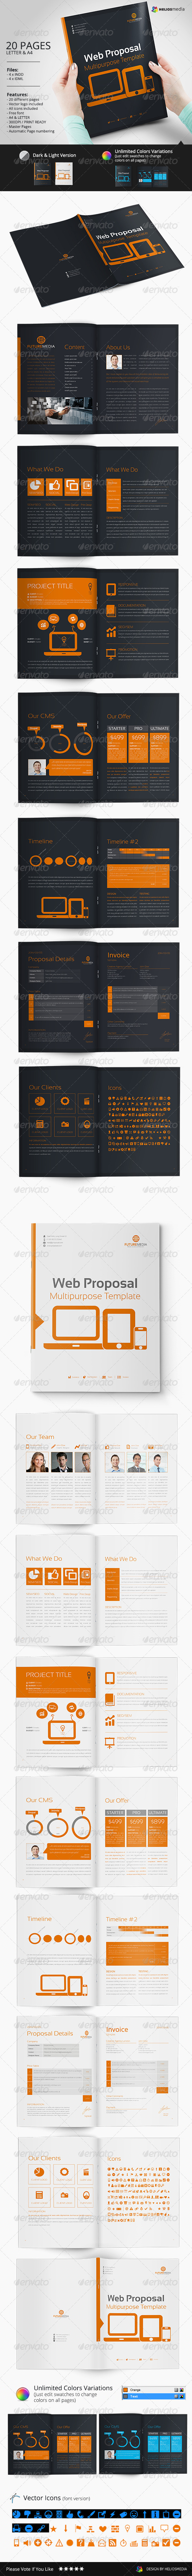 GraphicRiver Web Proposal Template 7129144